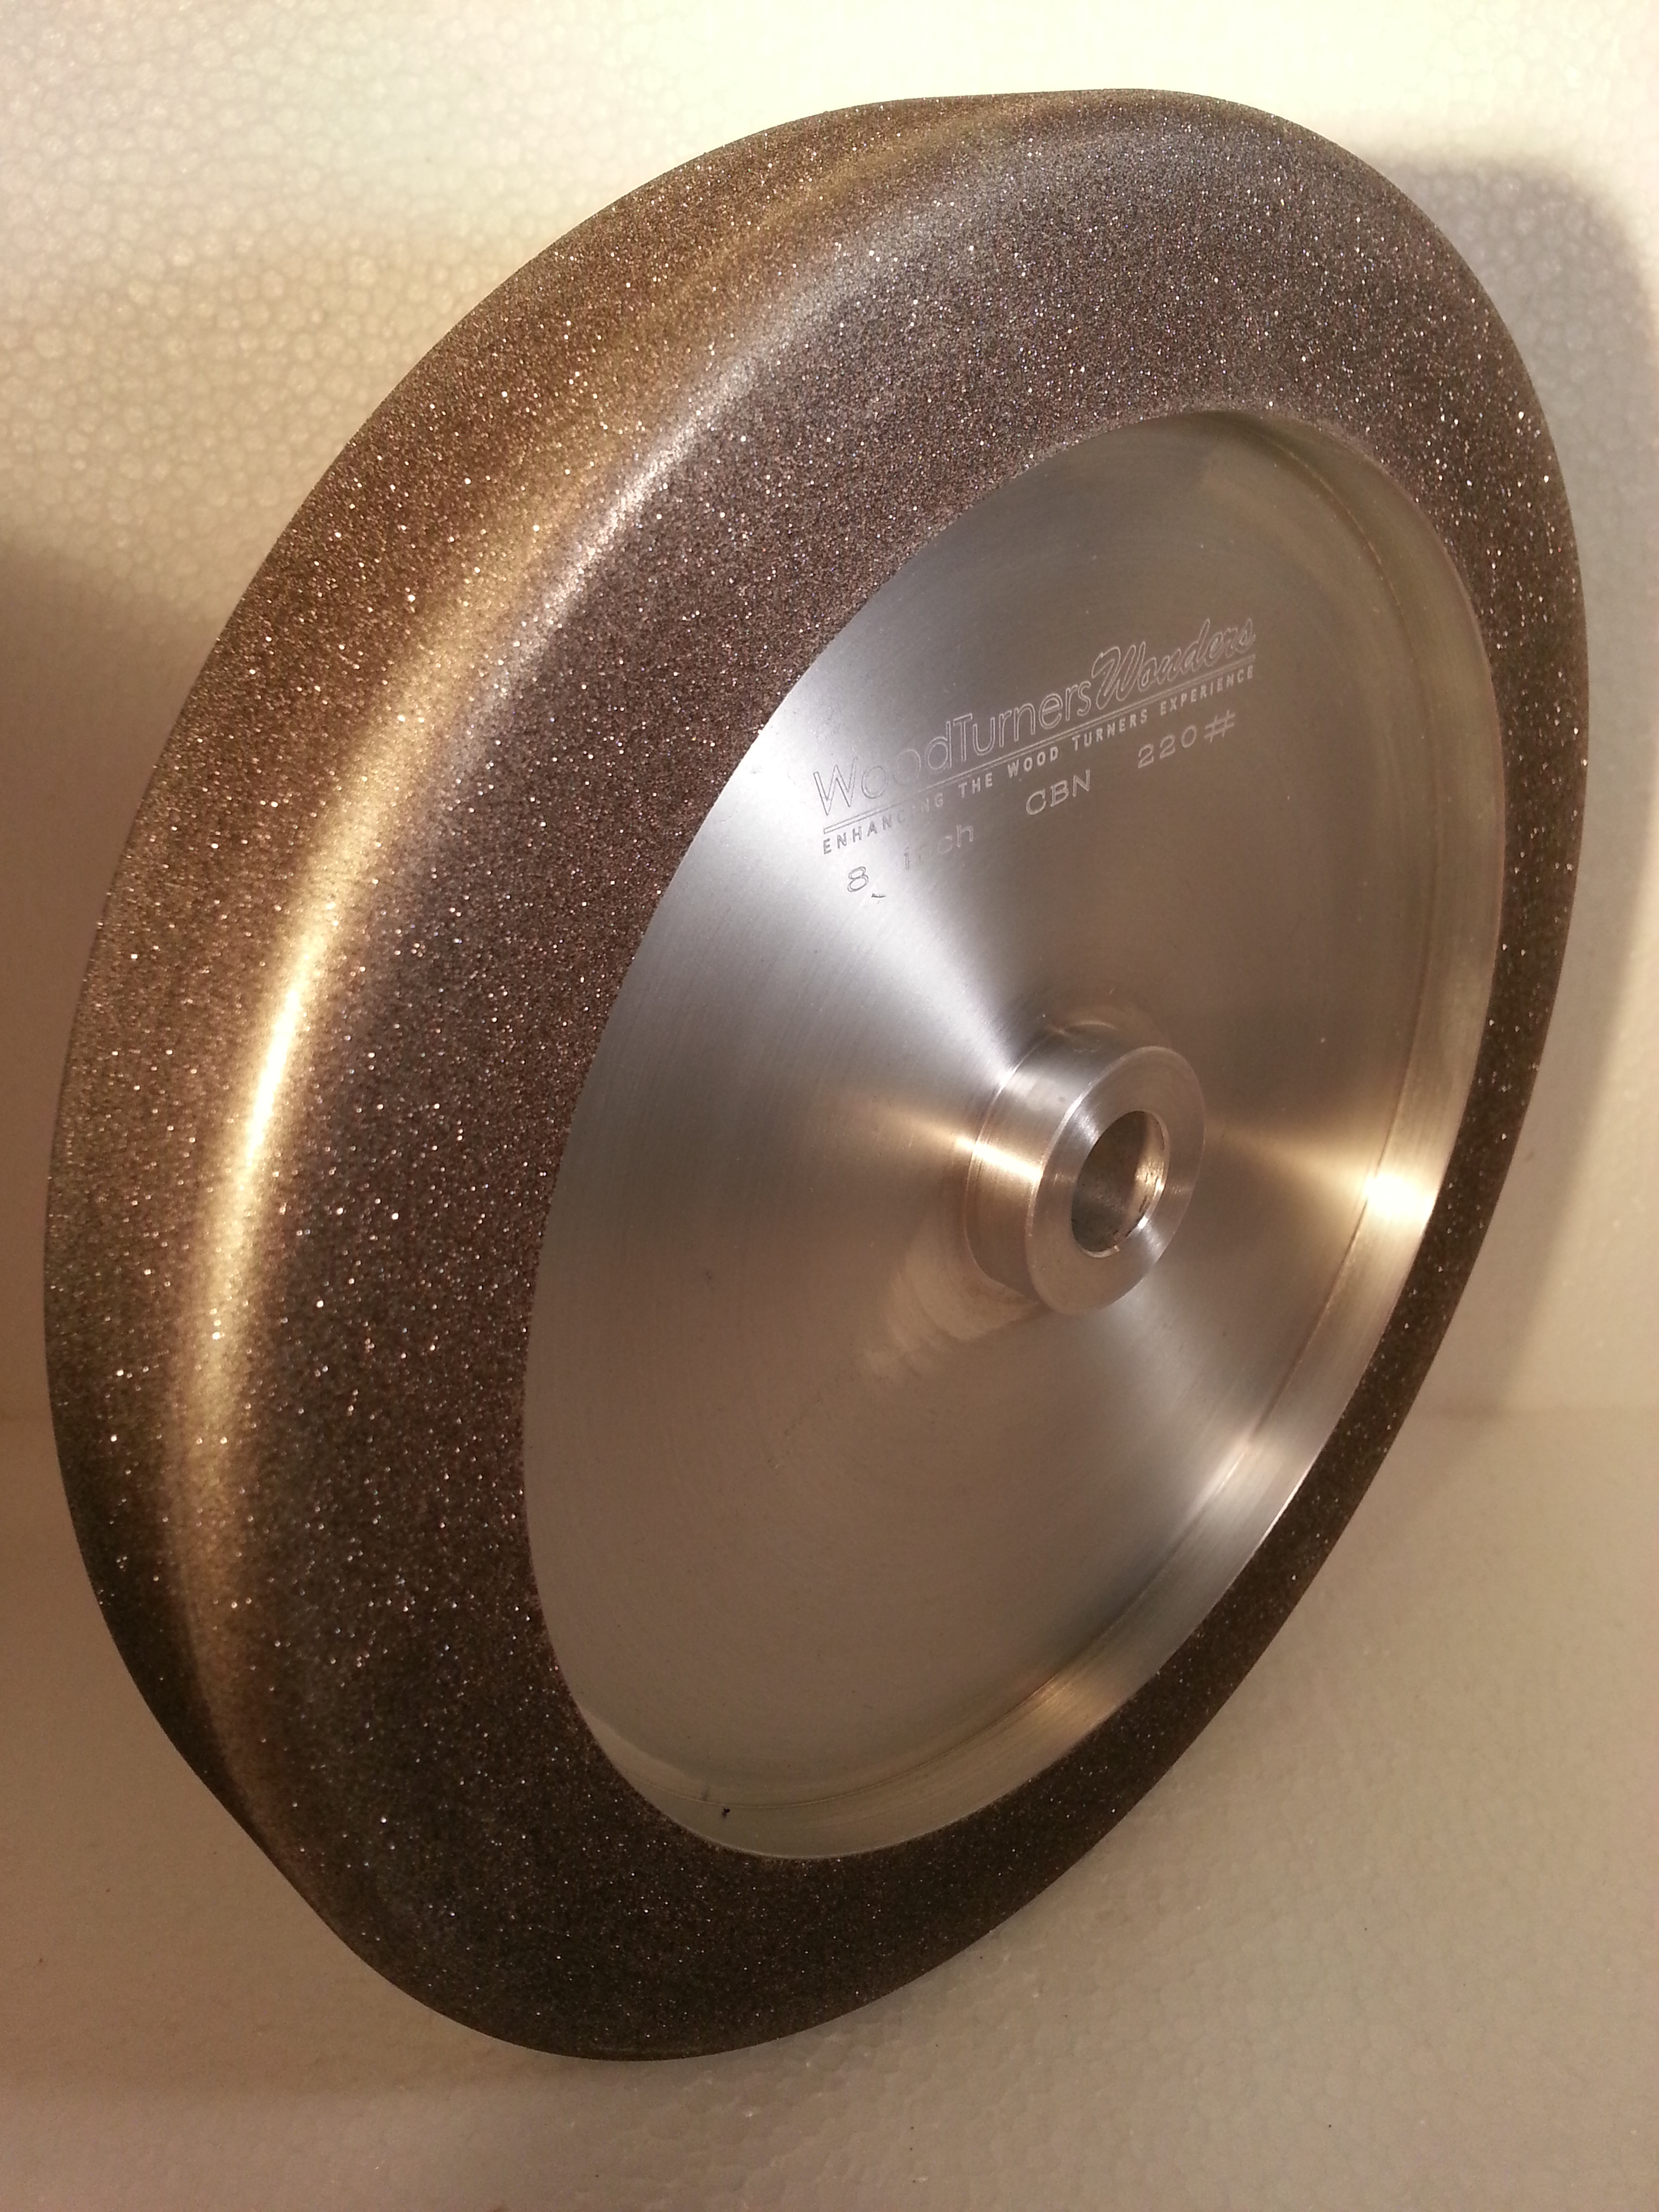 New 4 in 1 wheel from Wood Turners Wonder